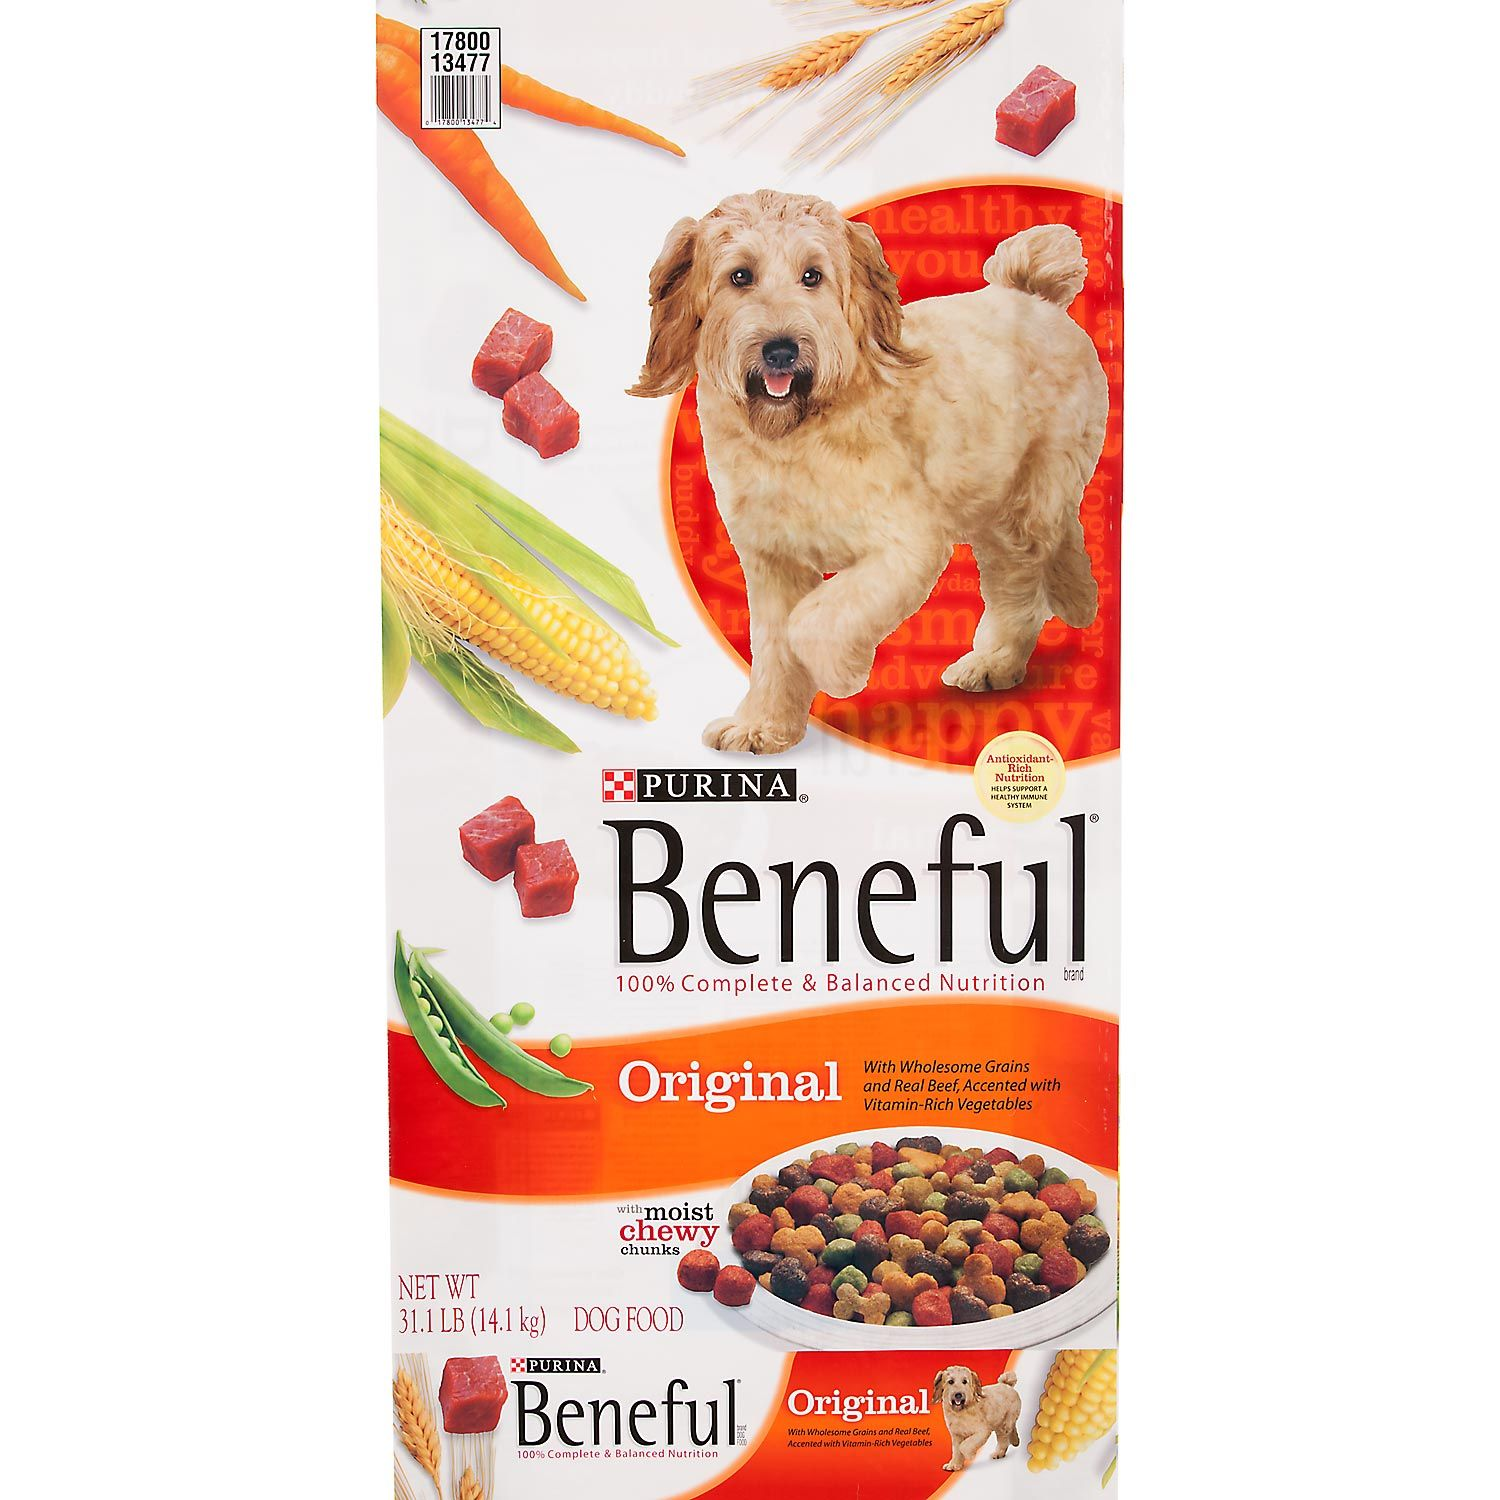 Beneful Dry Dog Food Only 2 20 A Bag At Target Dog Food Recipes